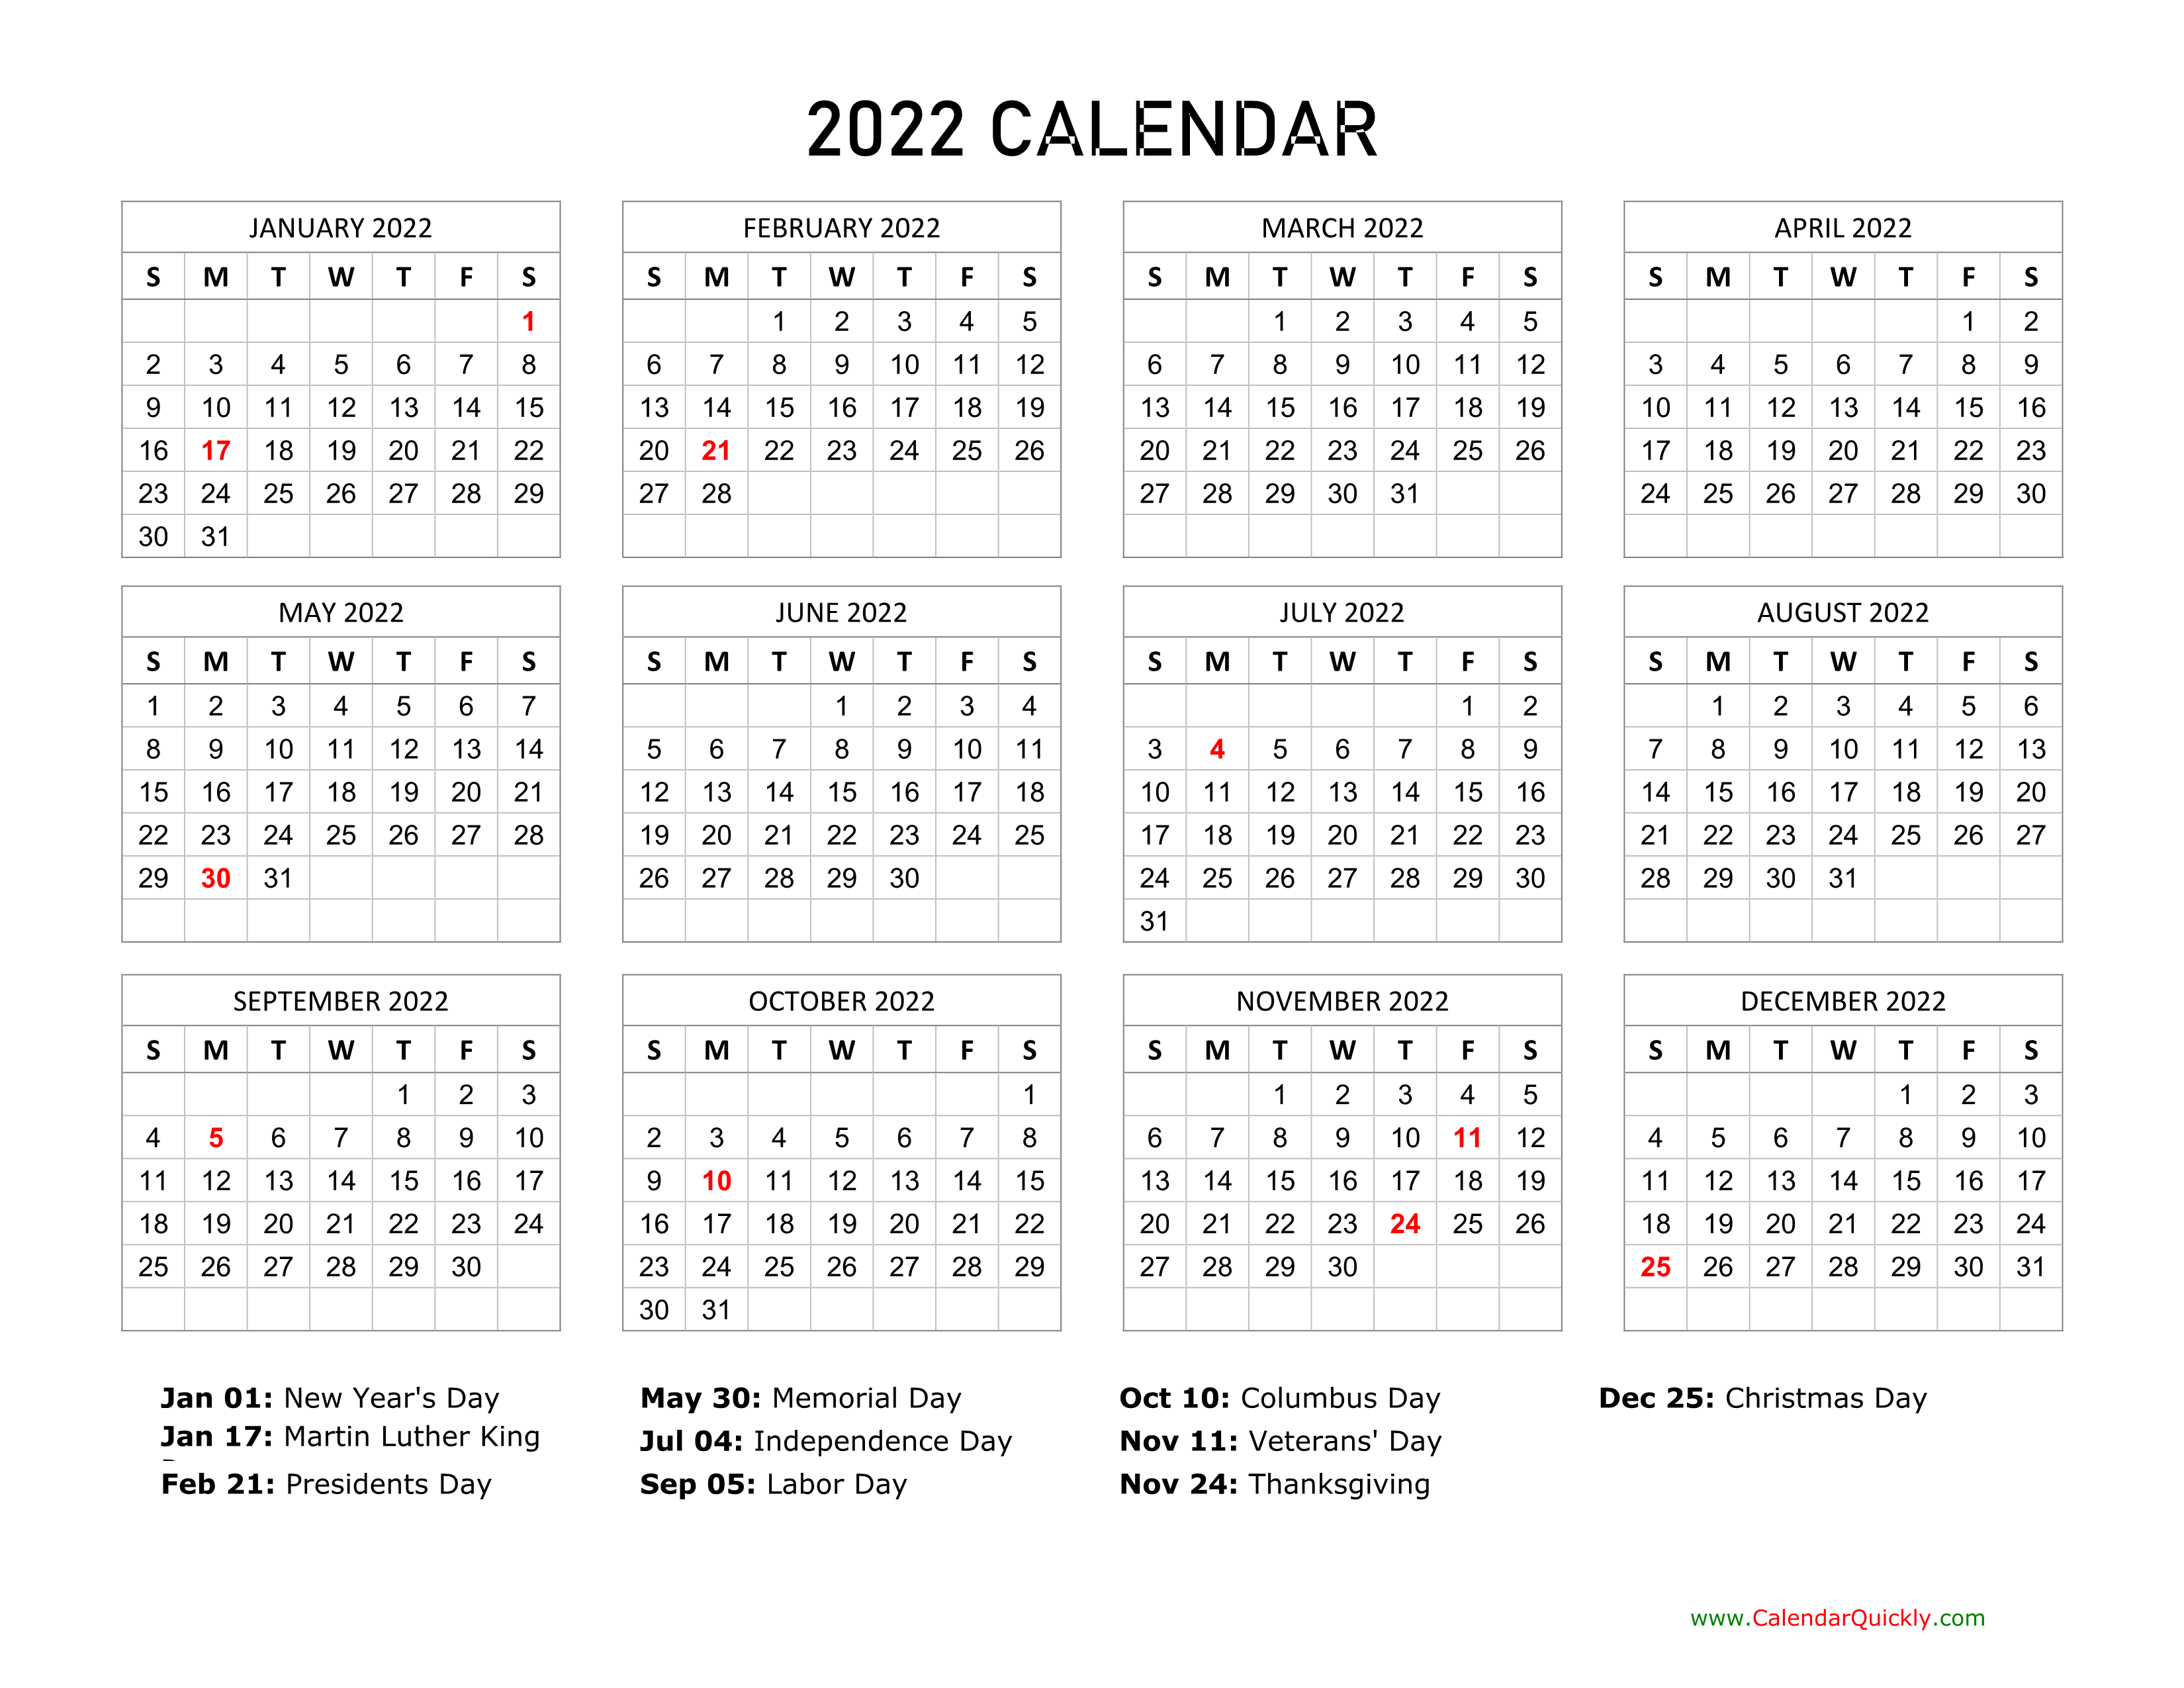 January is often the time when cabin fever sets in. 2022 Calendar with Holidays   Calendar Quickly